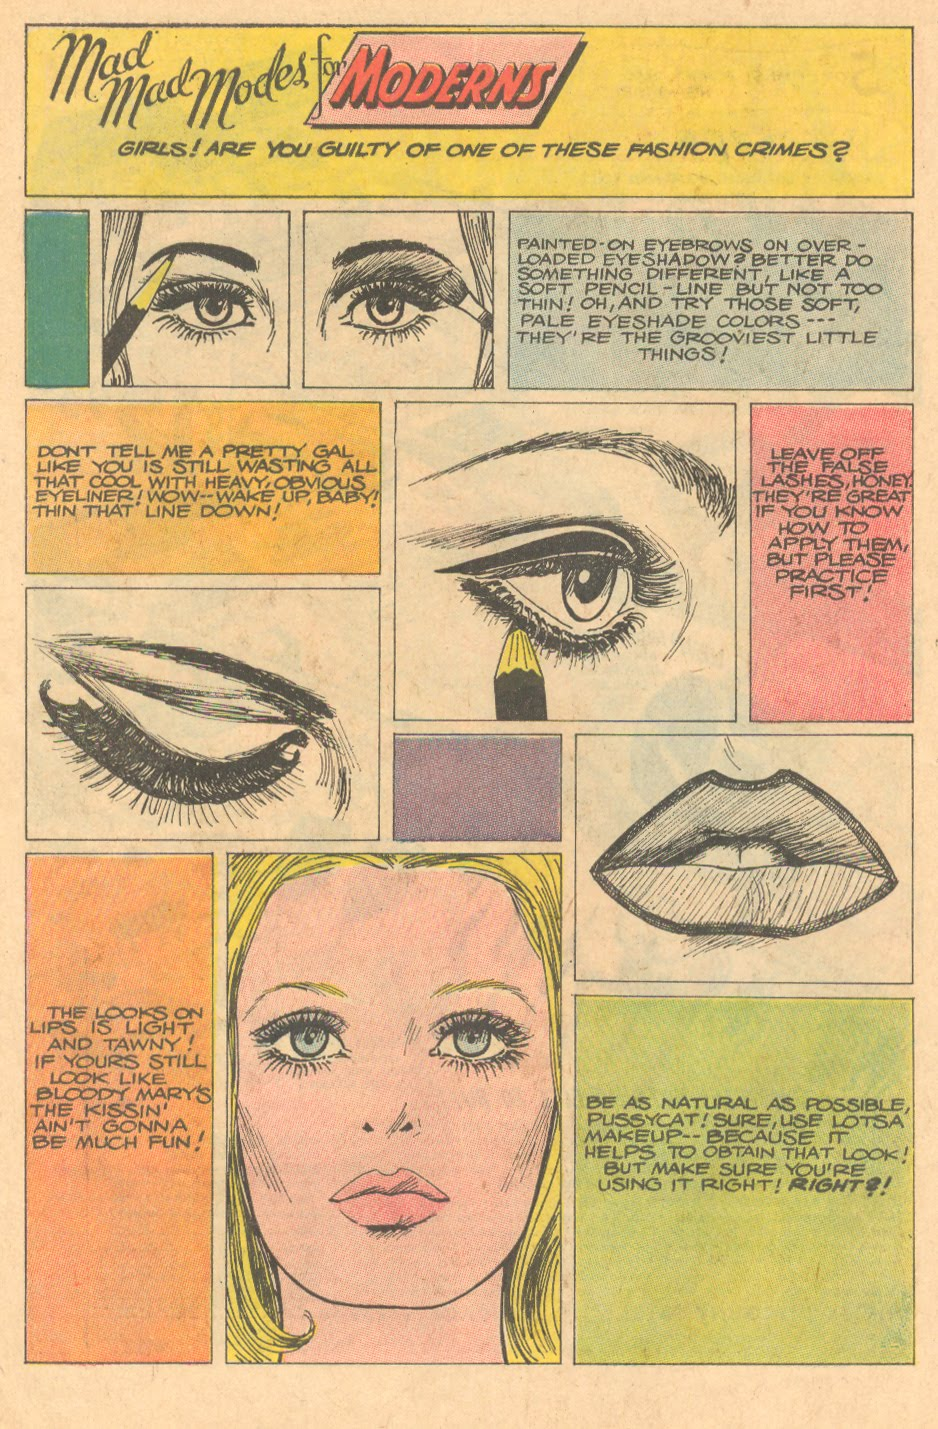 """Mad Mad Modes for Moderns""  Girls' Romances  #140 (April 1969)"